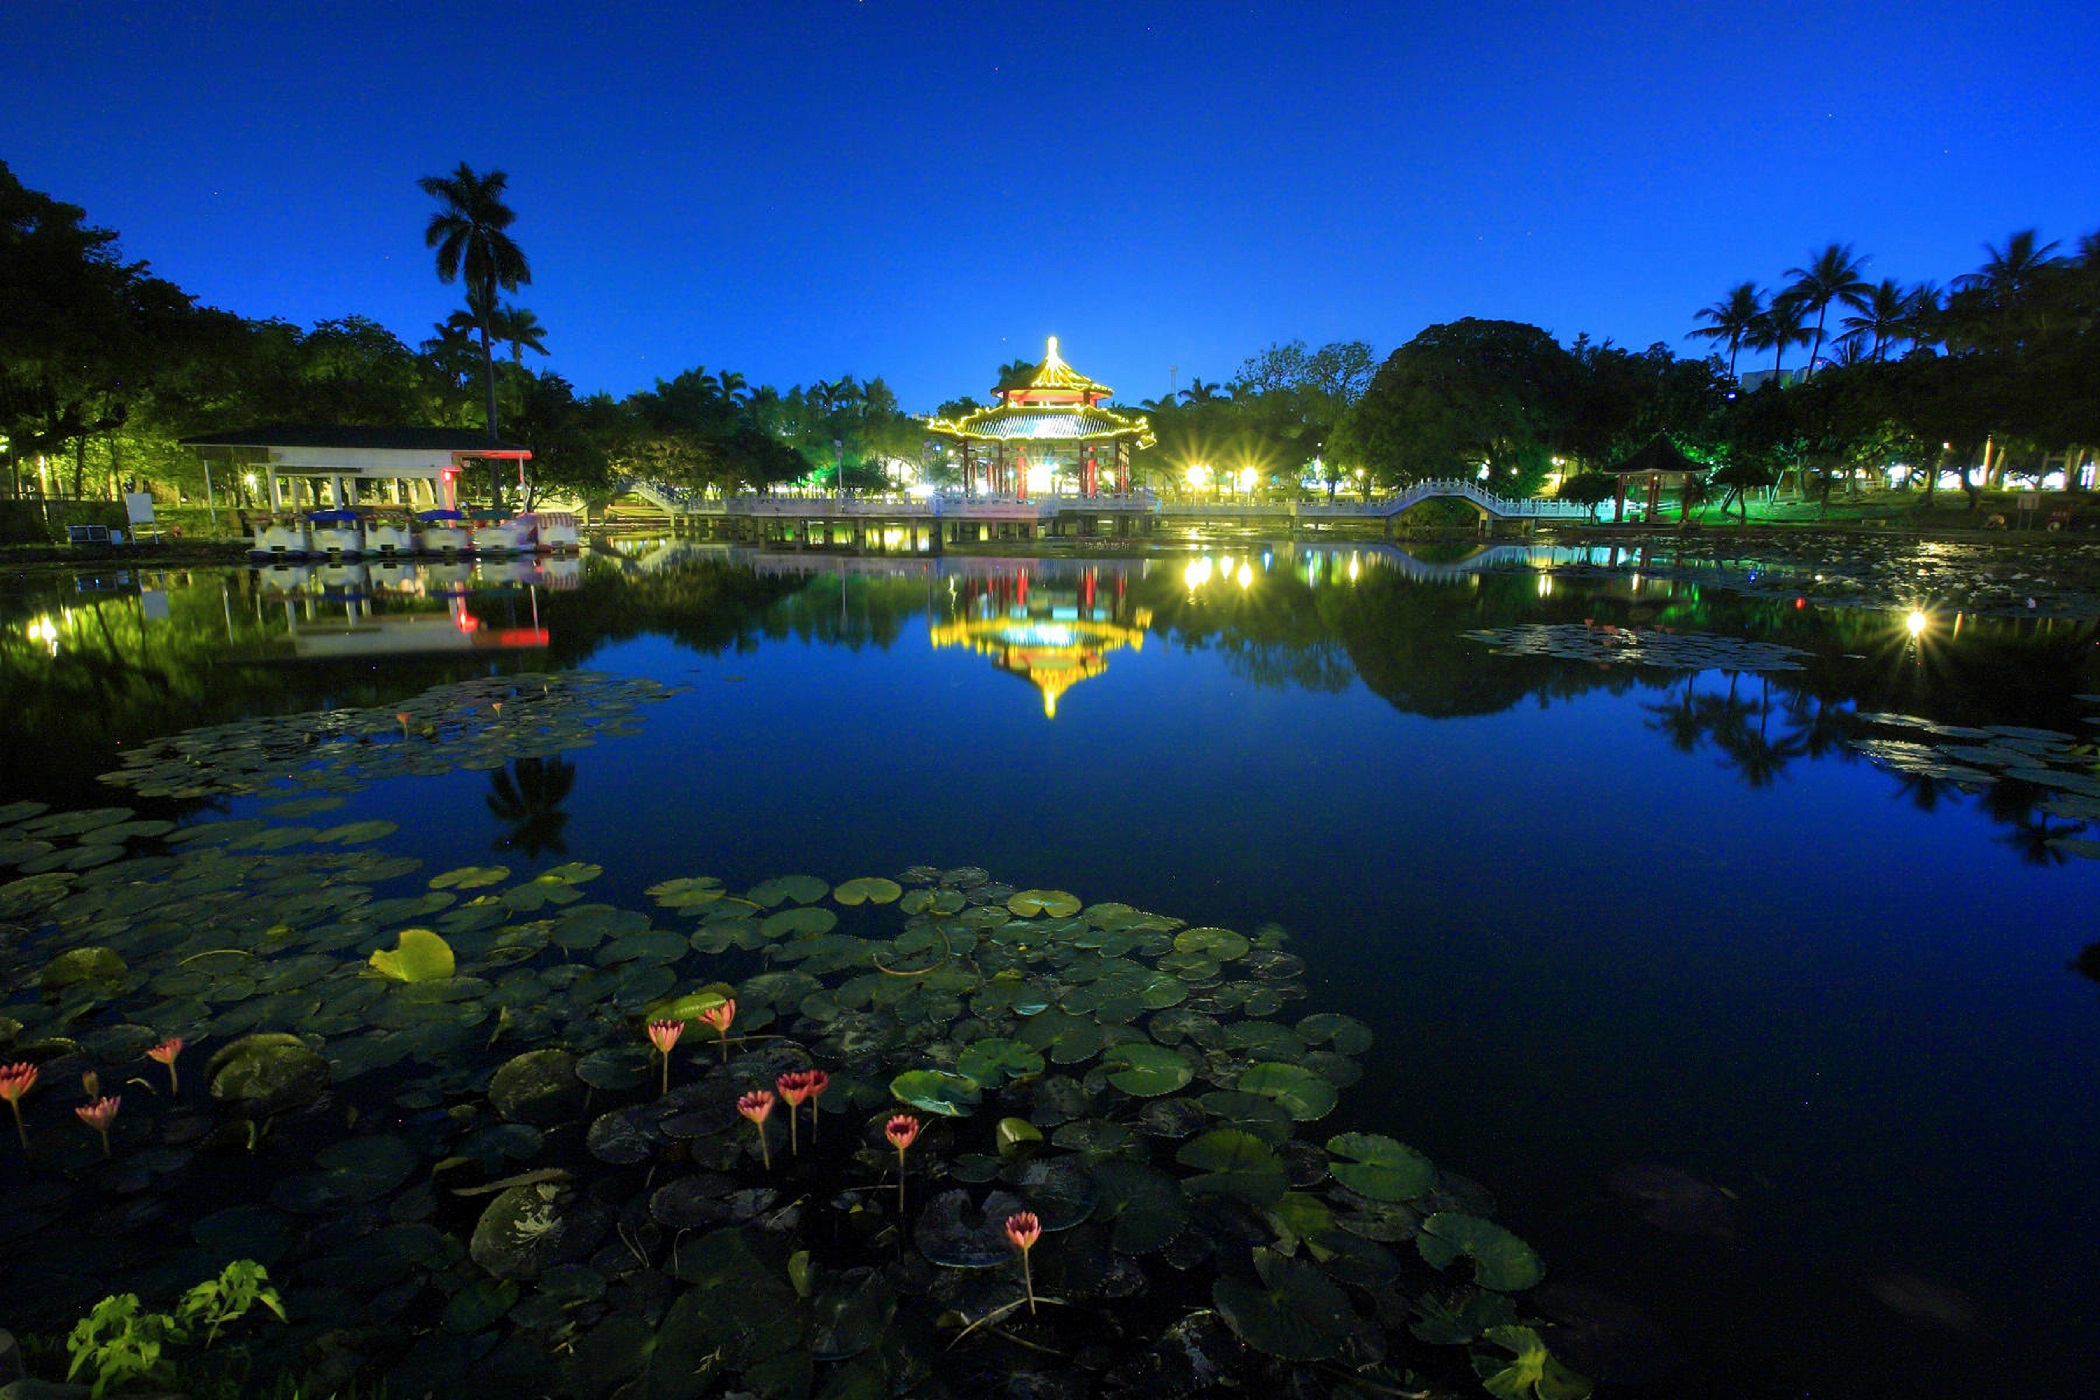 A nighttime view of Tainan Park.